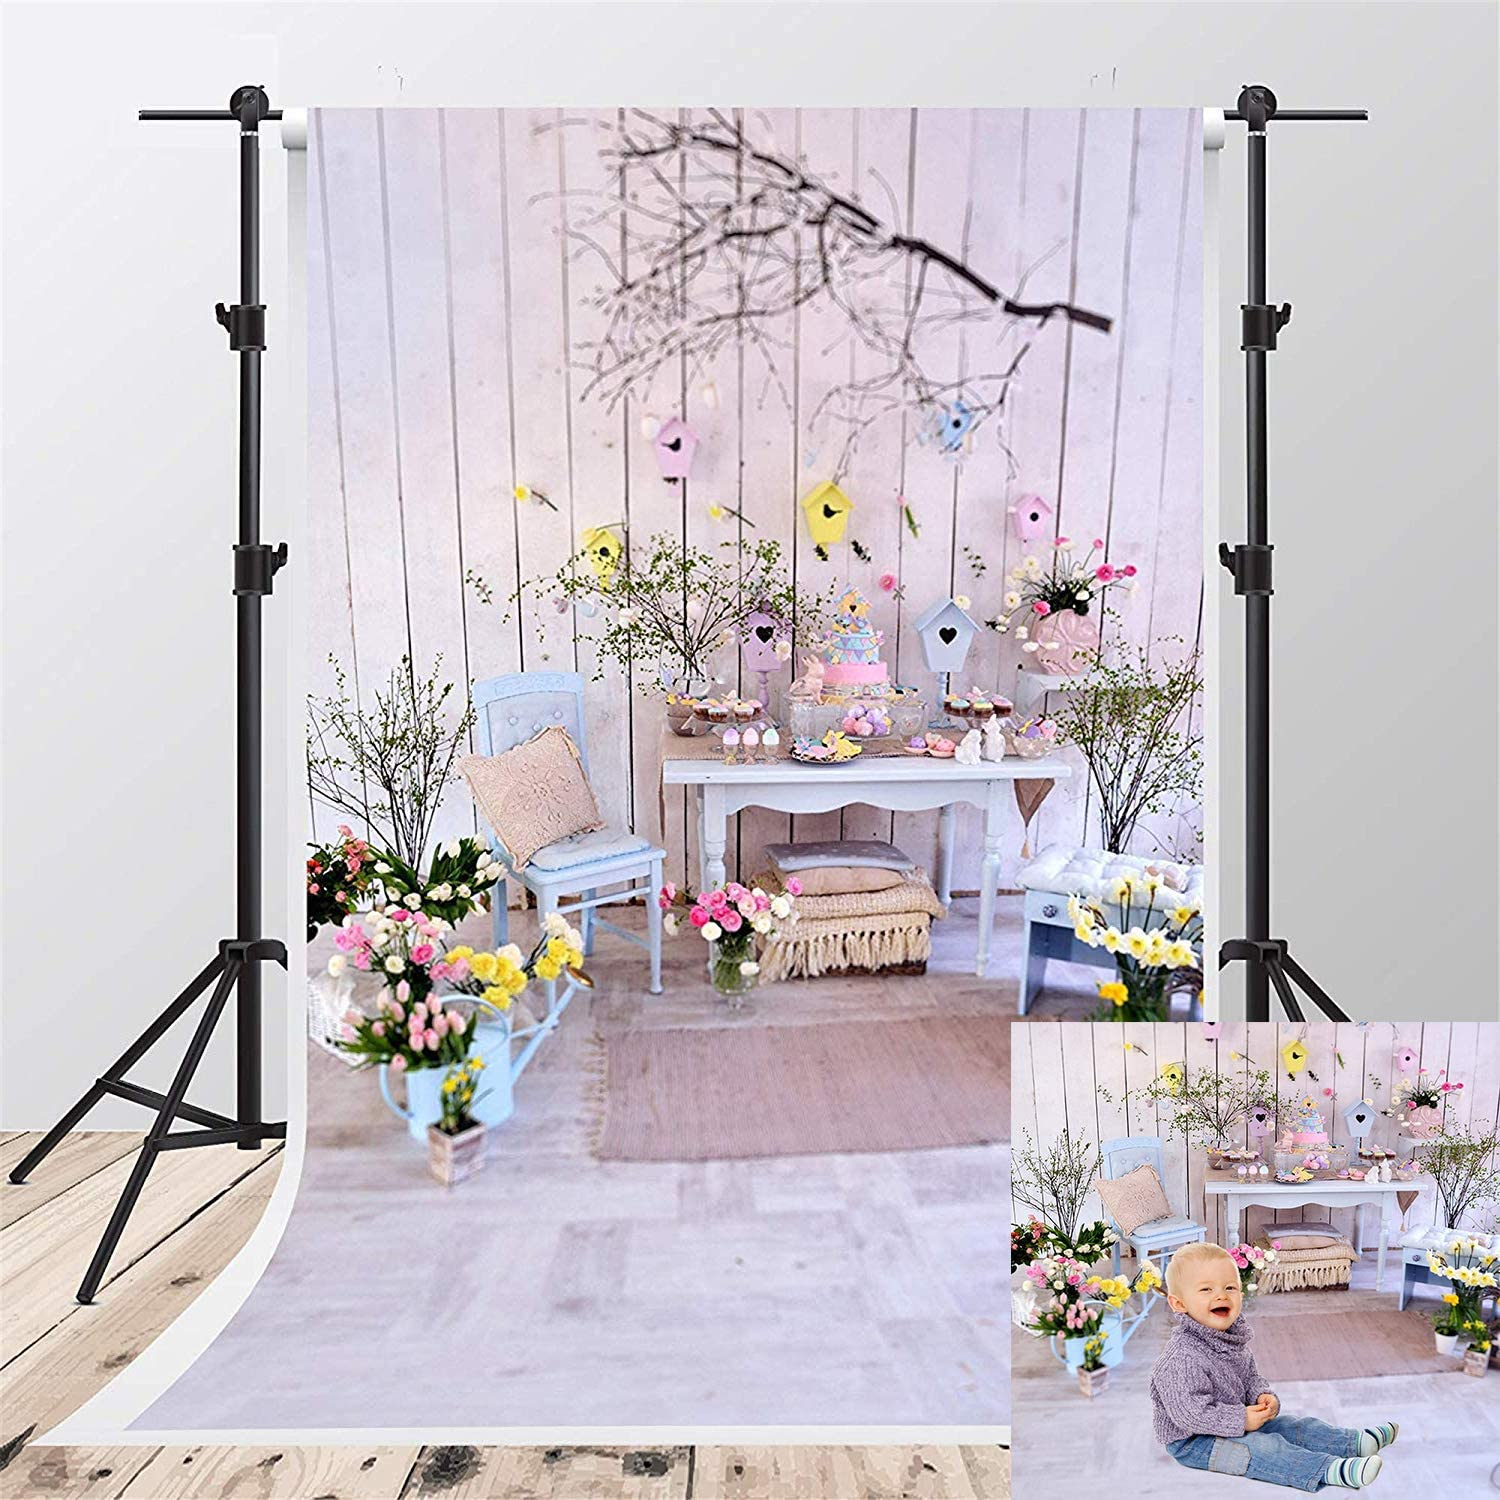 Kate 8x8ft Microfiber Easter Eggs Backdrops for Photoshoot Cute Rabbit Background Spring Holiday Party Decoration Backgrounds Rustic Wood Wall Studio Backdrop